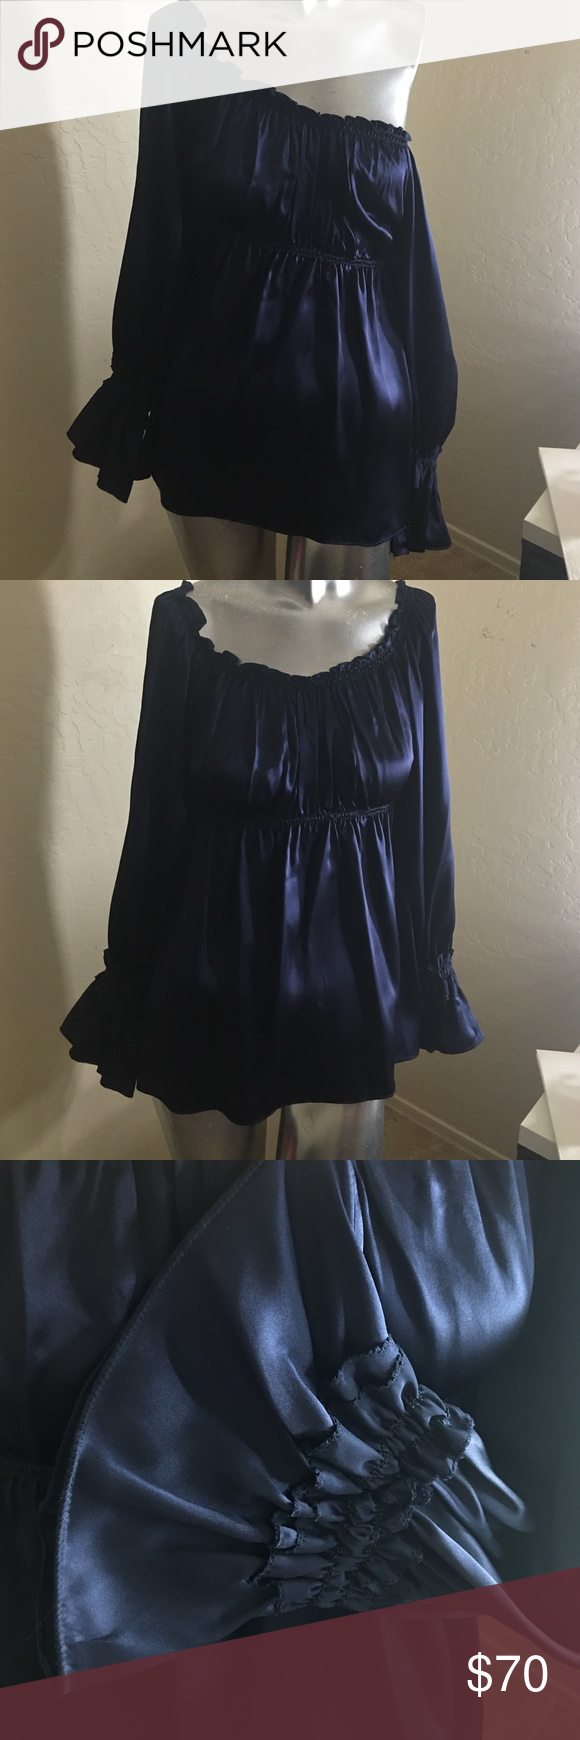 Max Studio MSSP small 100% silk Bohemian NWT Blue Max Studio MSSP Navy Blue 100% silk blouse, retails for $88.00 is new with tag, beautiful blouse look at the gathering around the waist, and the sleeves are very elegant! Can be worn on or off the shoulder. 👑 💙 Max Studio MSSP Tops Blouses